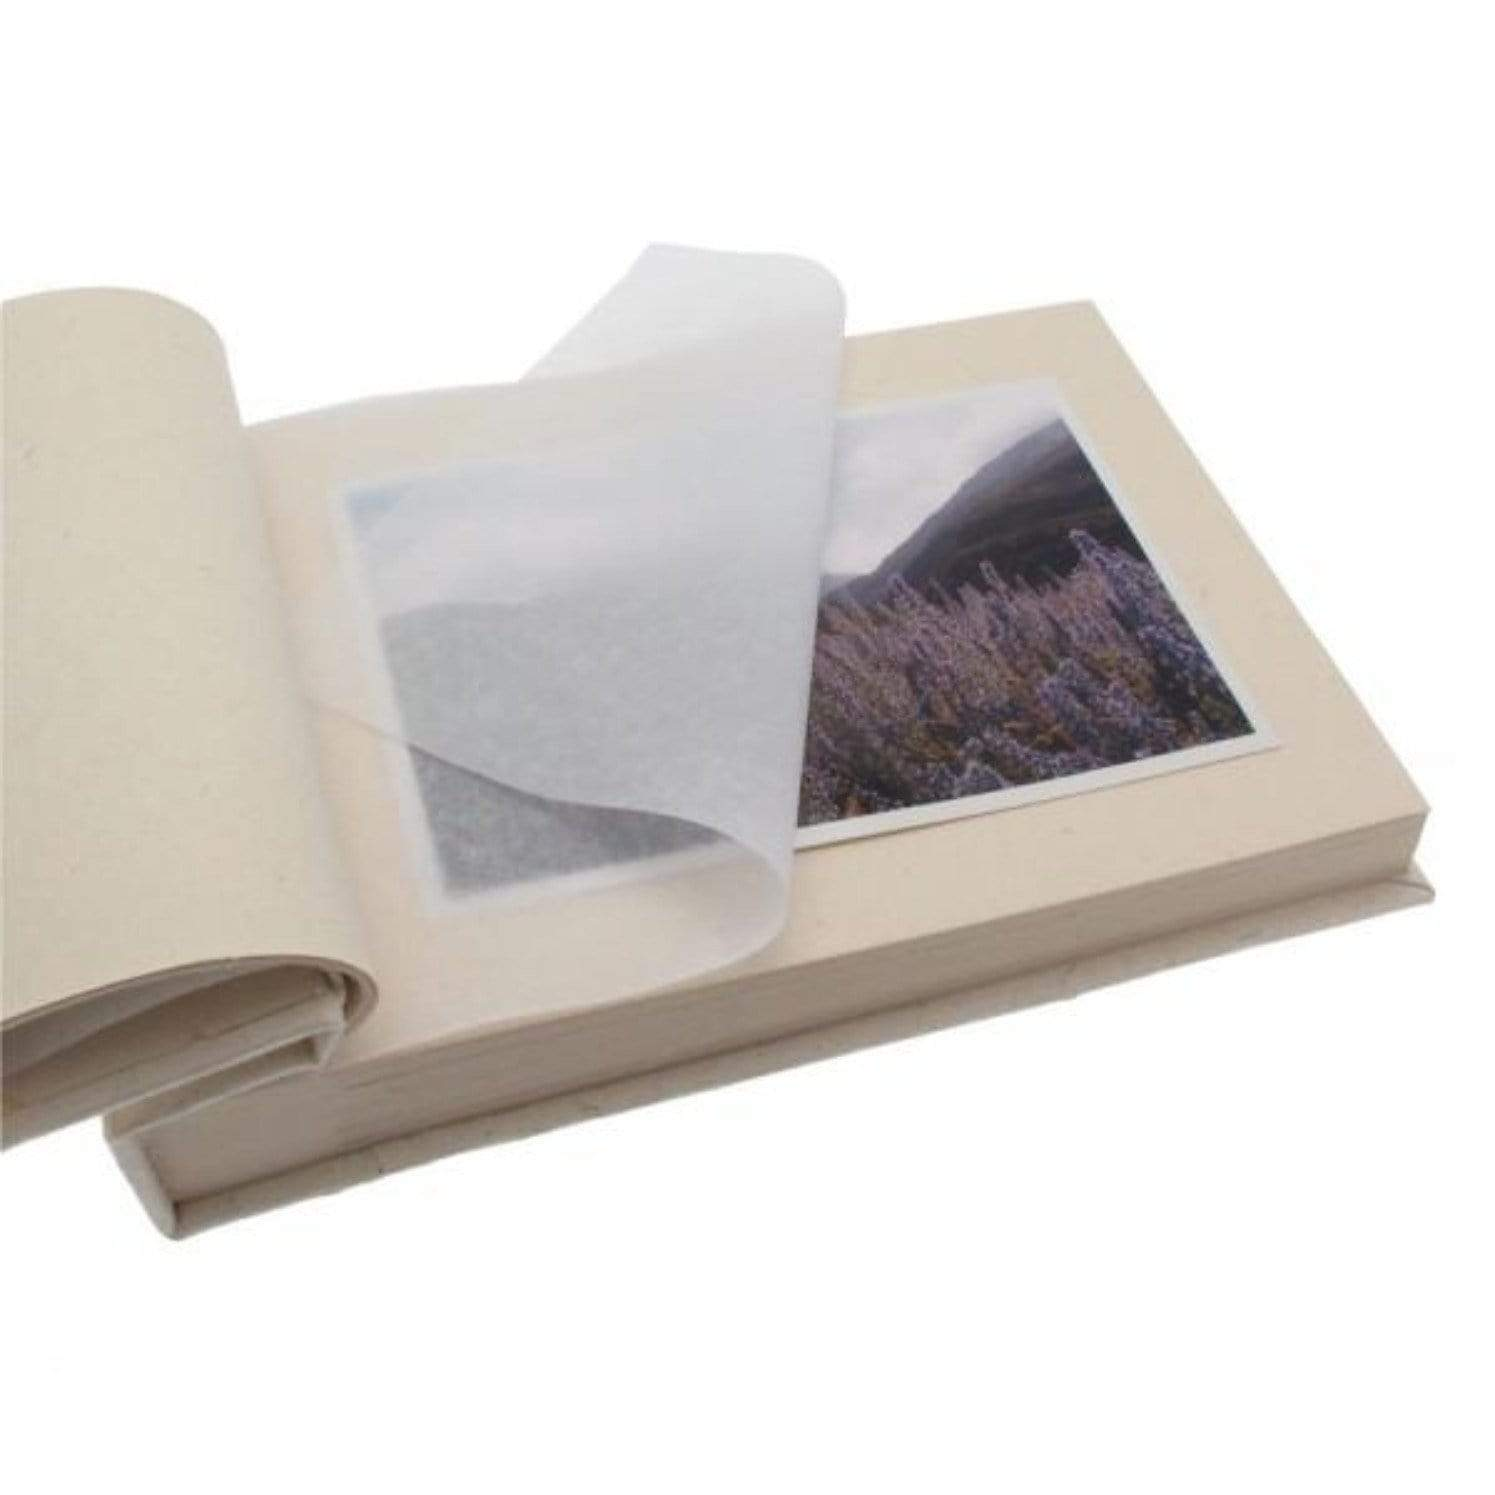 sustainable gifts Paper High Elephant dung photo album S